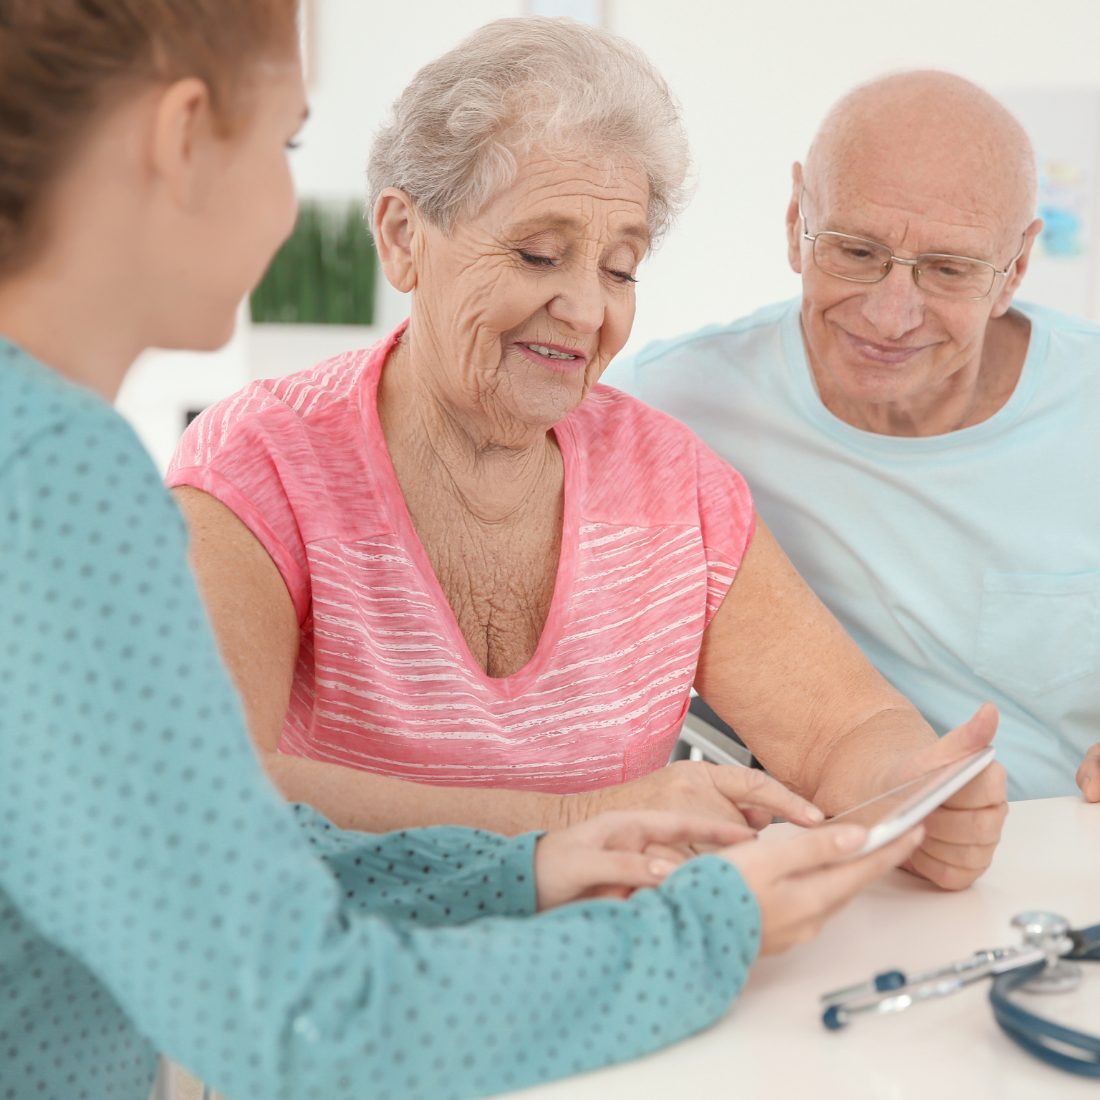 Priority Life Care Lighting the Way in Affordable Senior Care